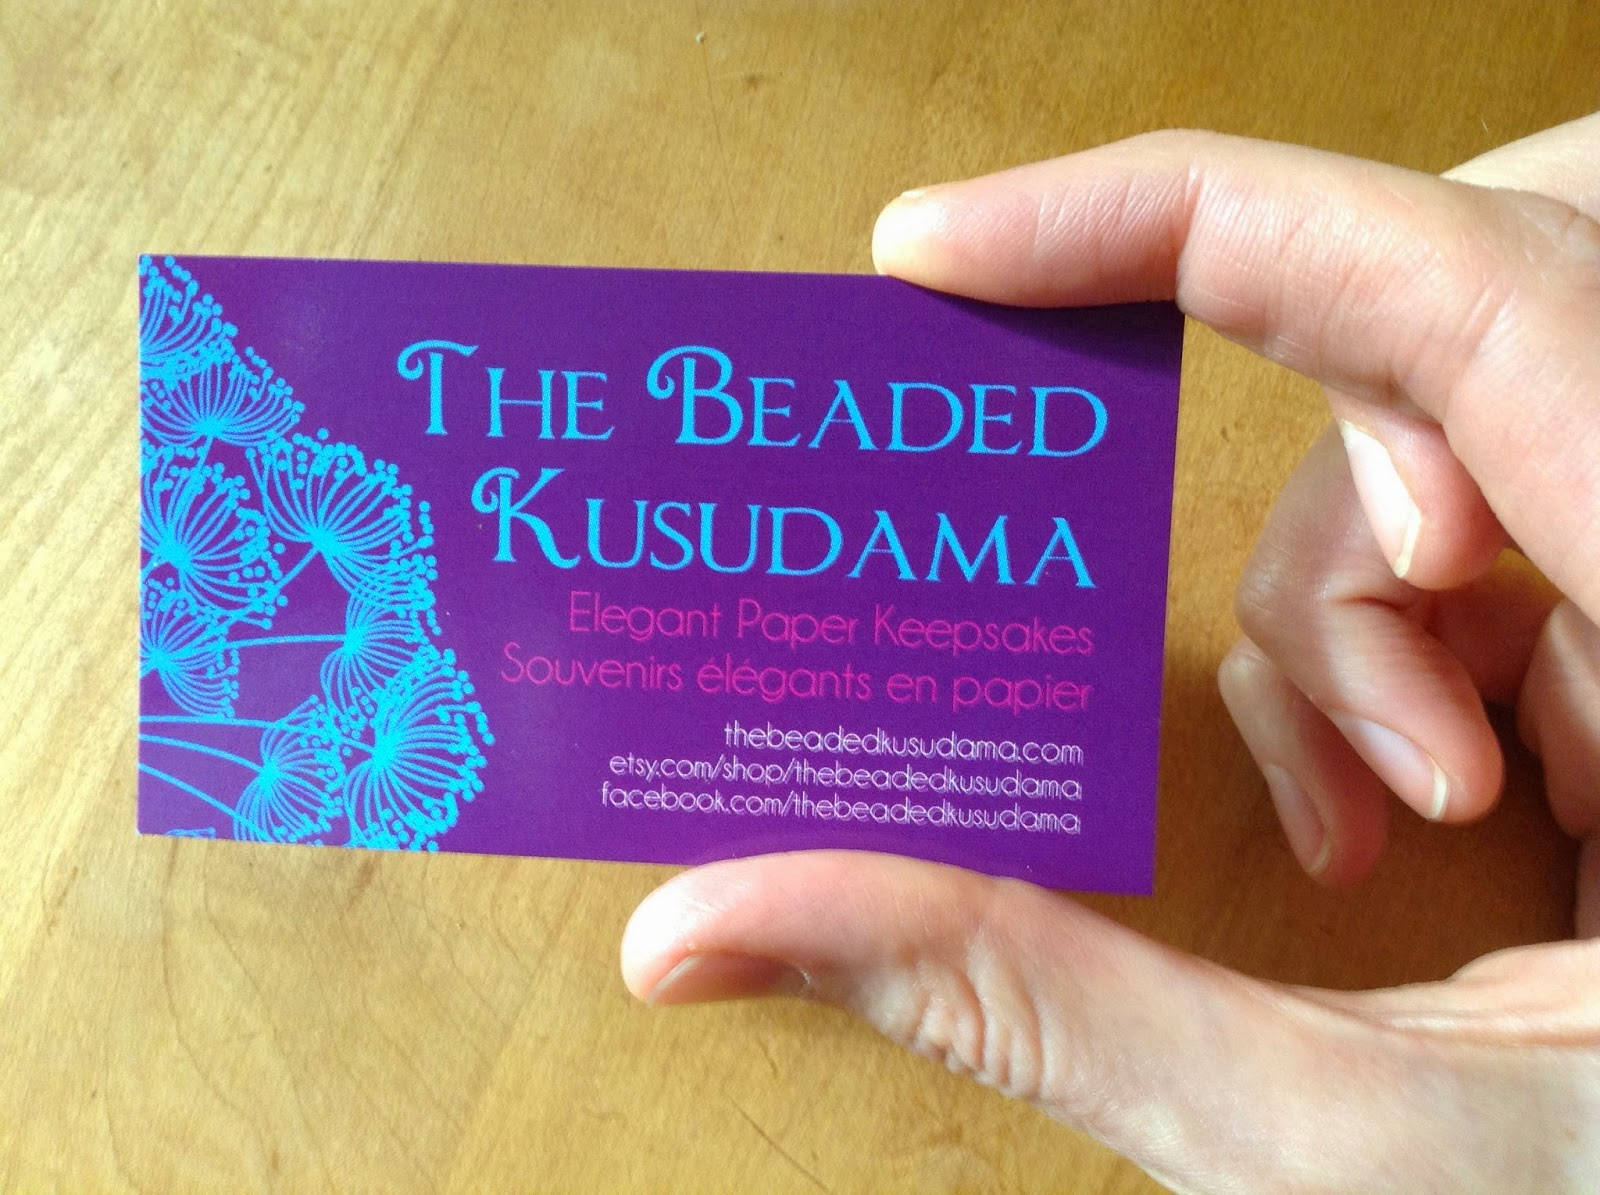 The Beaded Kusudama: Tutorial: How to Make a Business Card Using GIMP